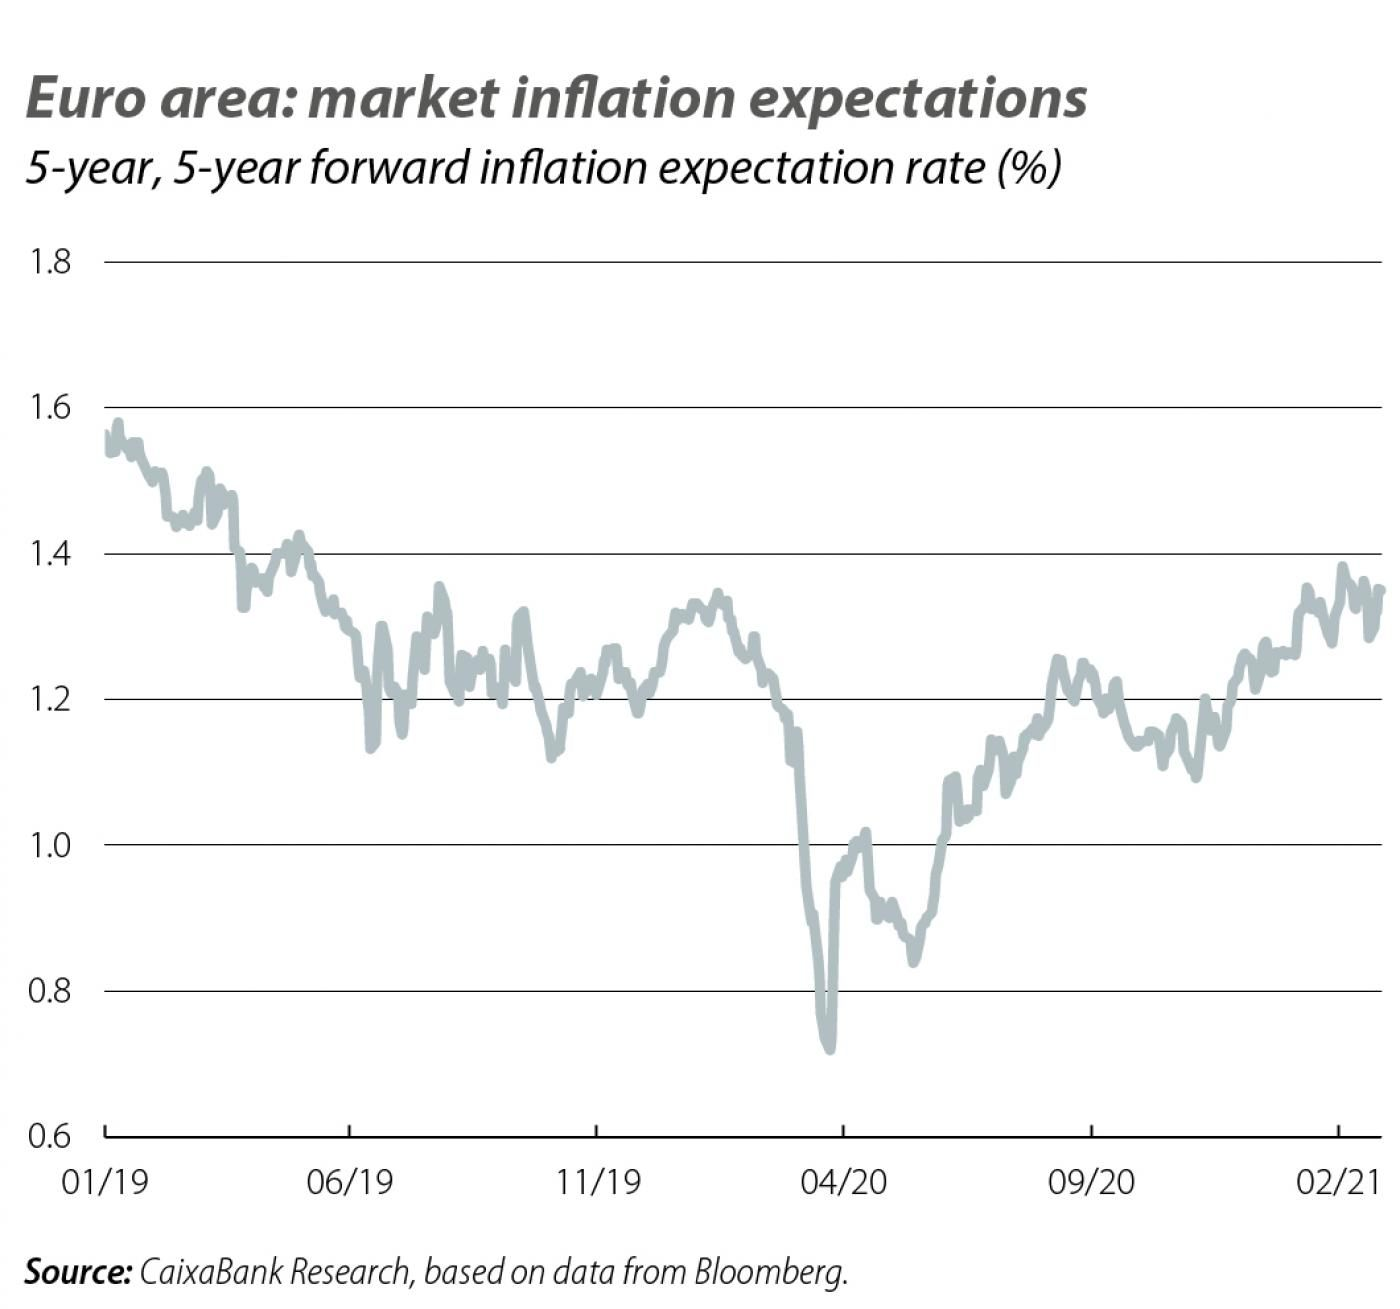 Euro area: market inflation expectations